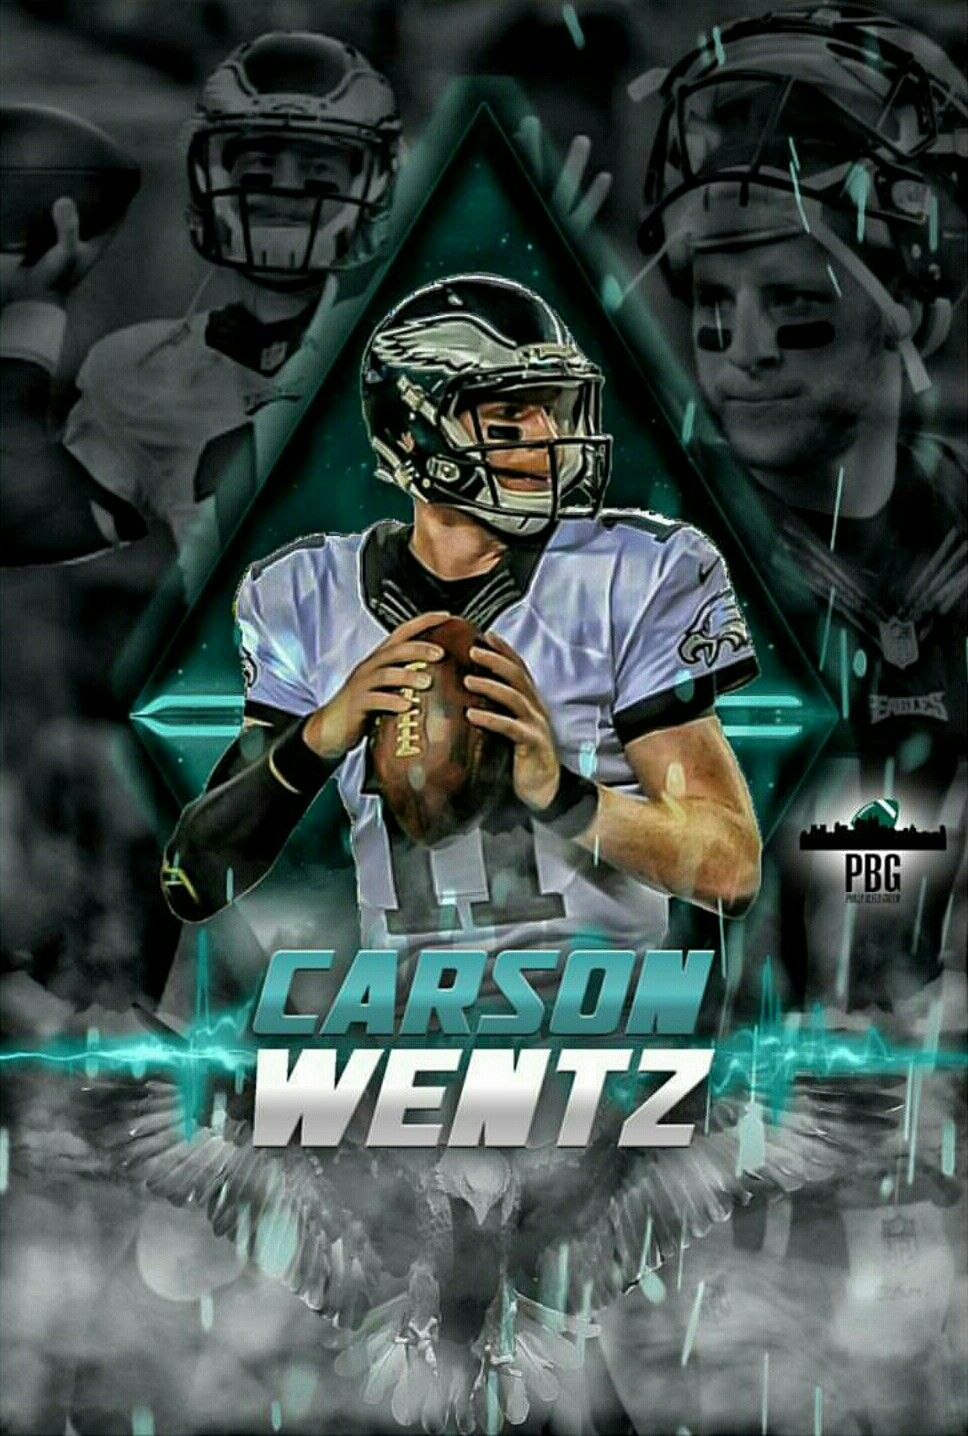 Carson Wentz Mvp Fly Eagles Fly Philadelphia Eagles Players Philadelphia Eagles Football Philadelphia Eagles Wallpaper